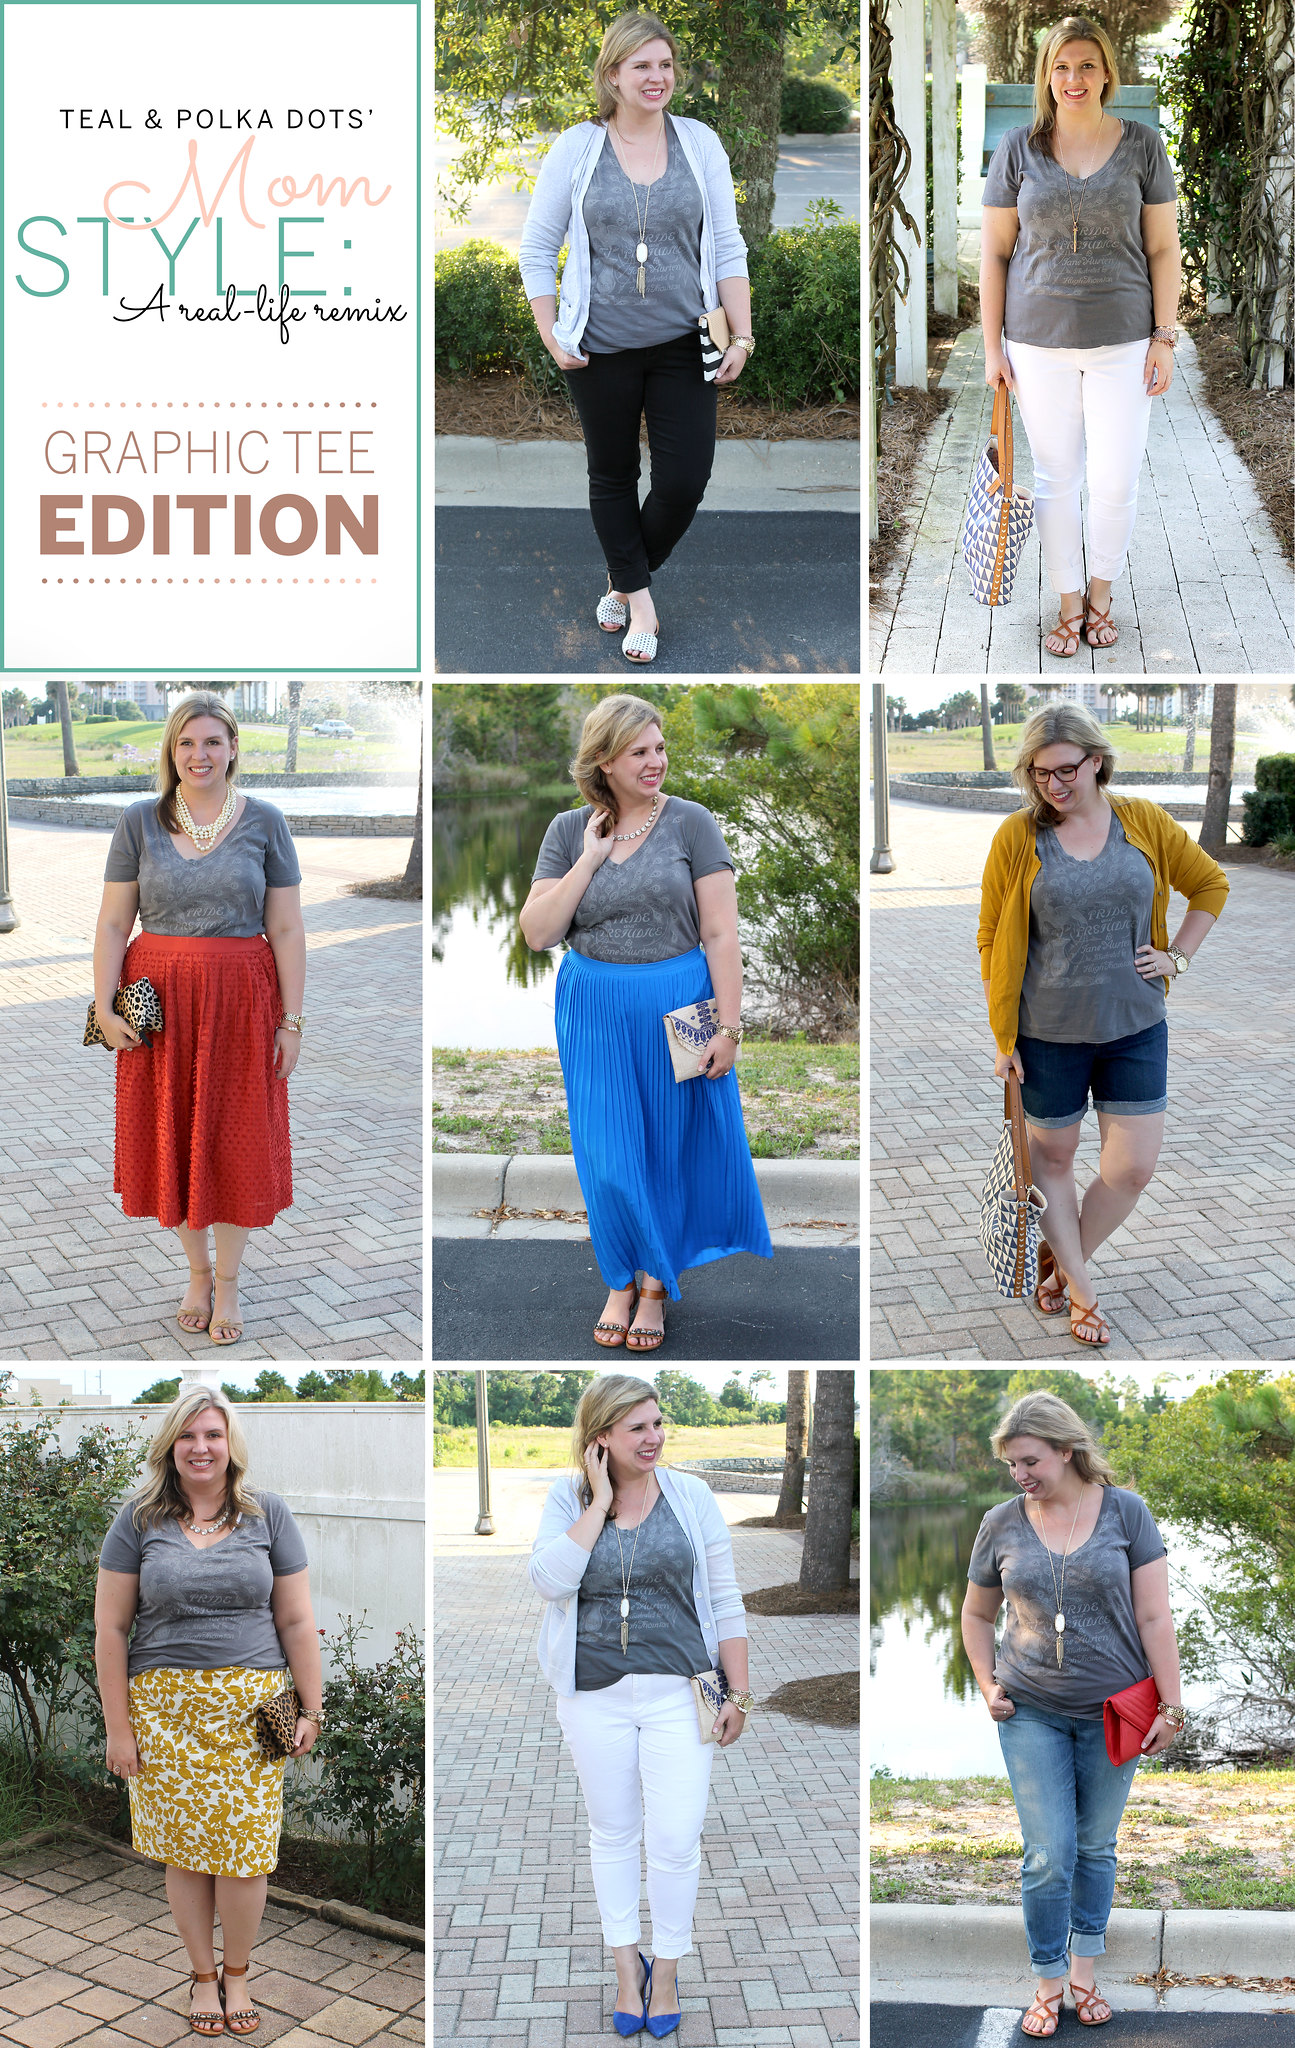 Fashion week Style Real-life challenge: dress remixing for woman